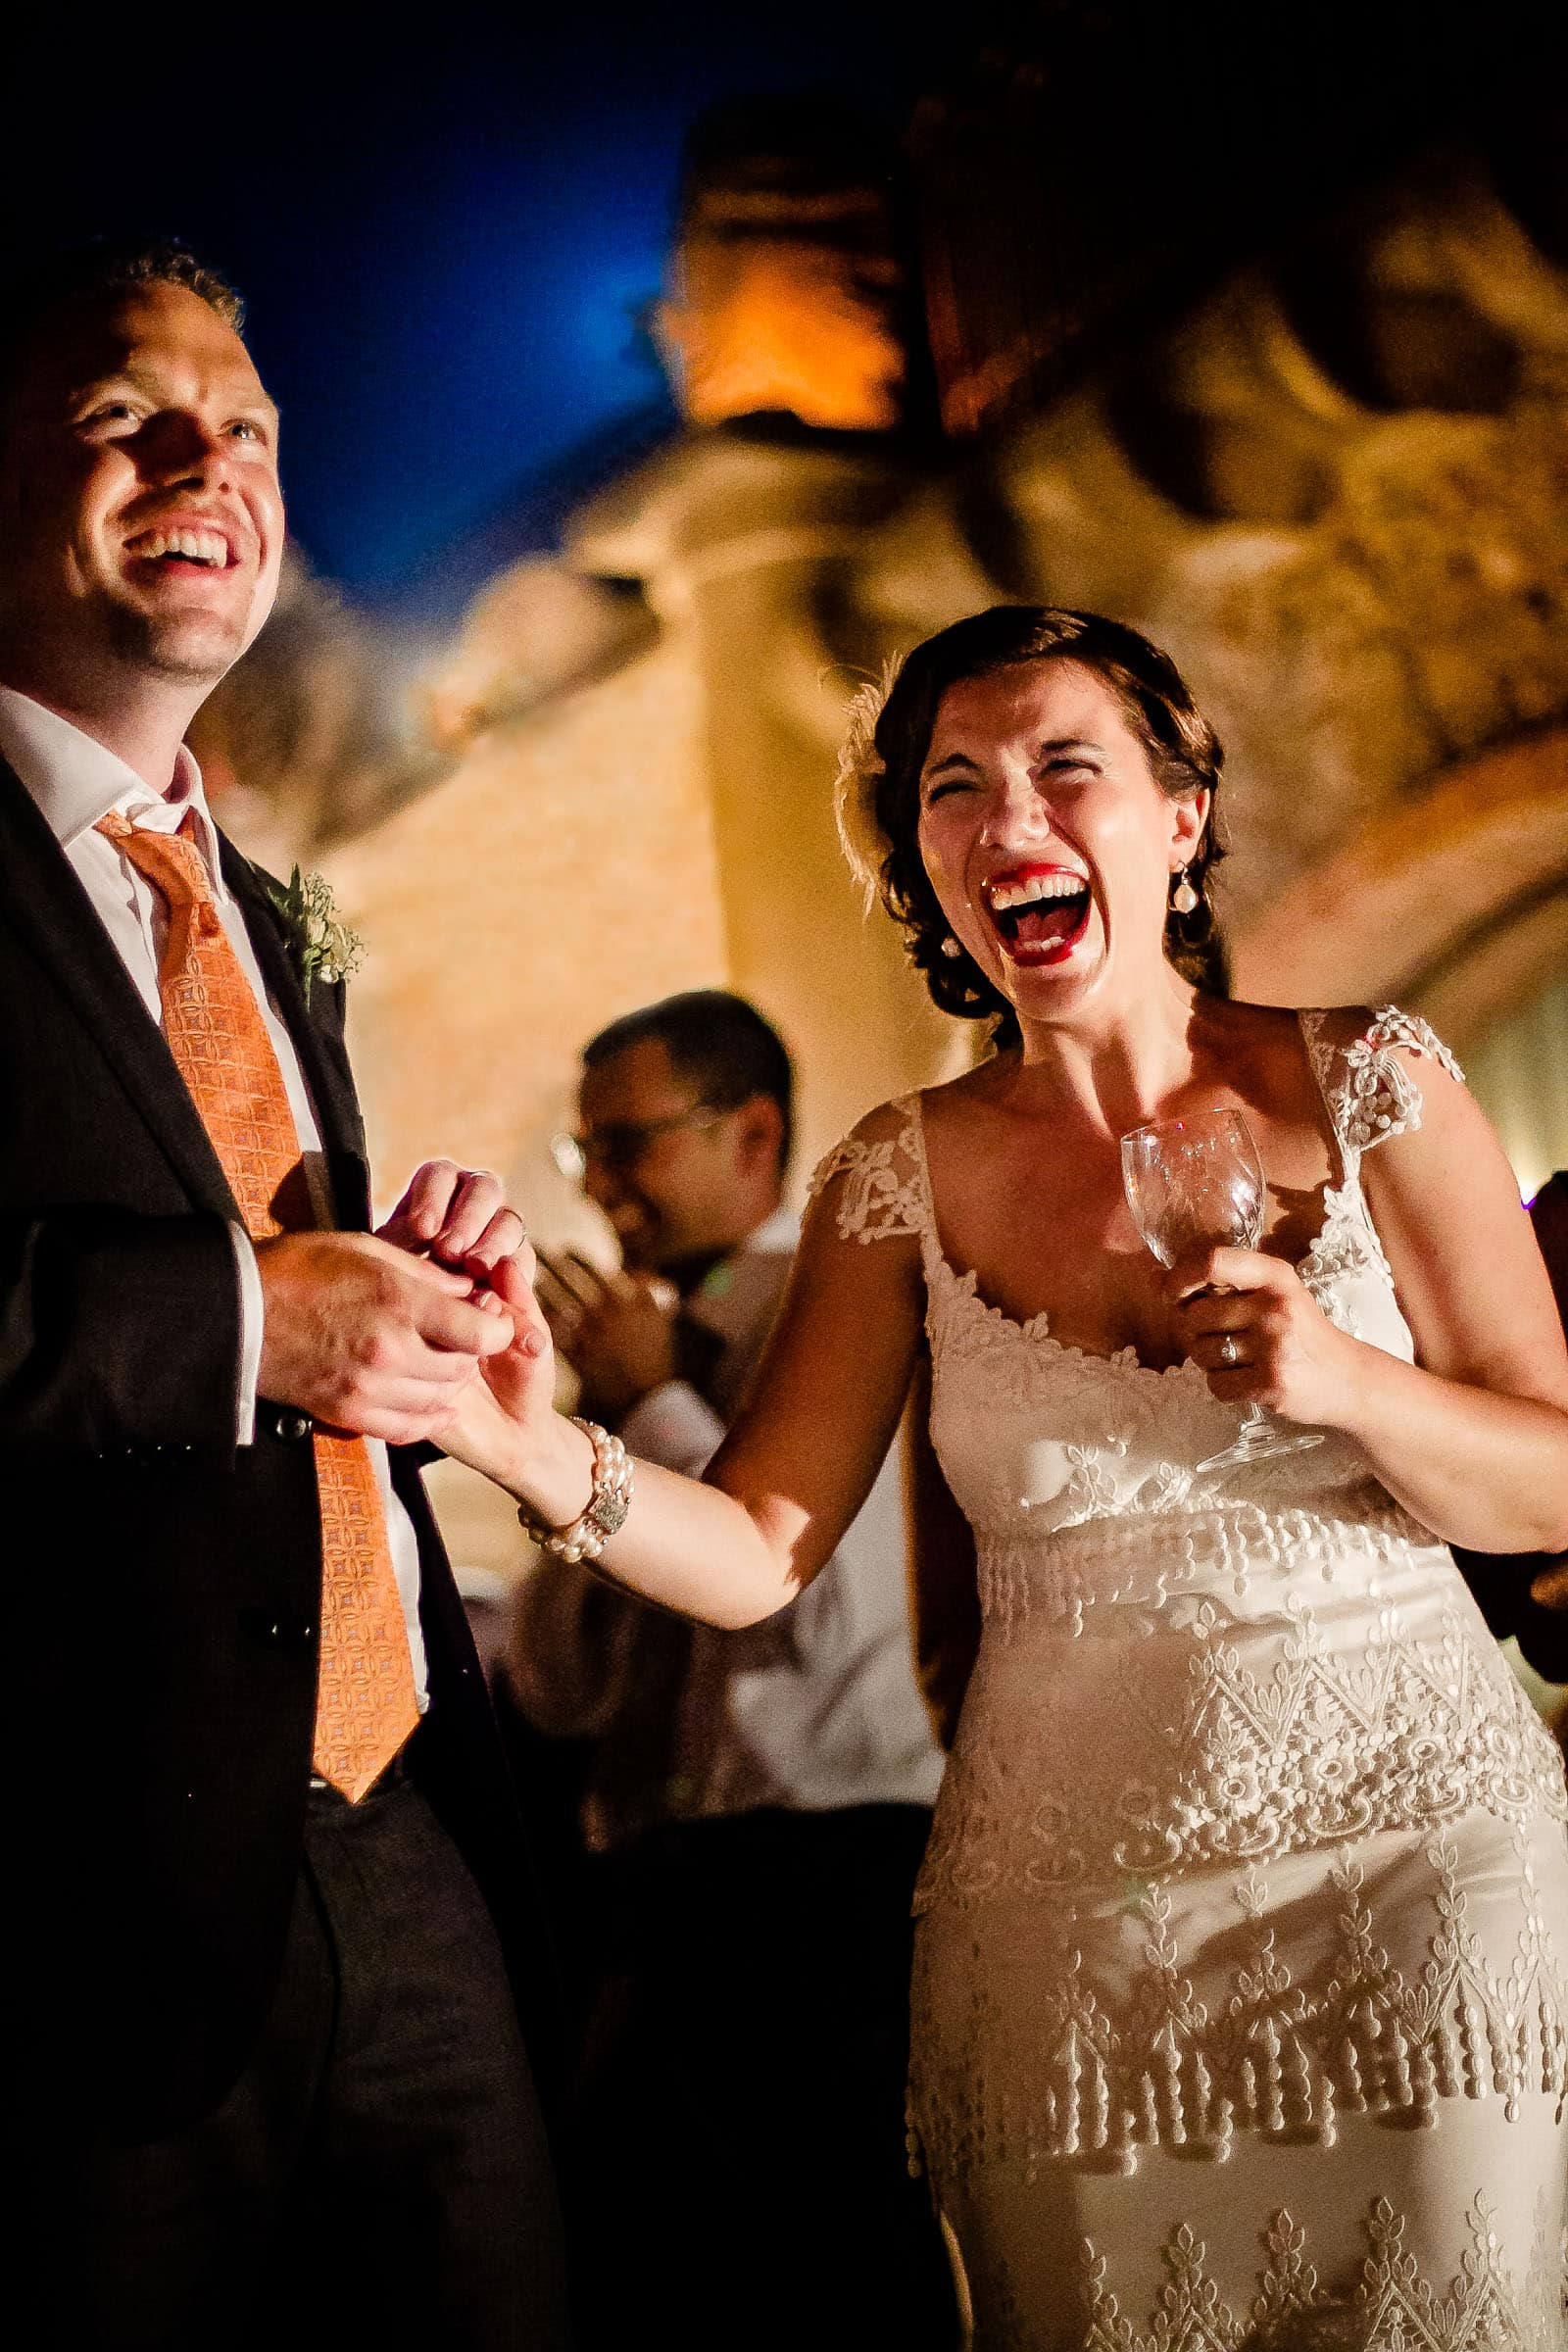 Bride hysterically laughing during Sicily wedding reception